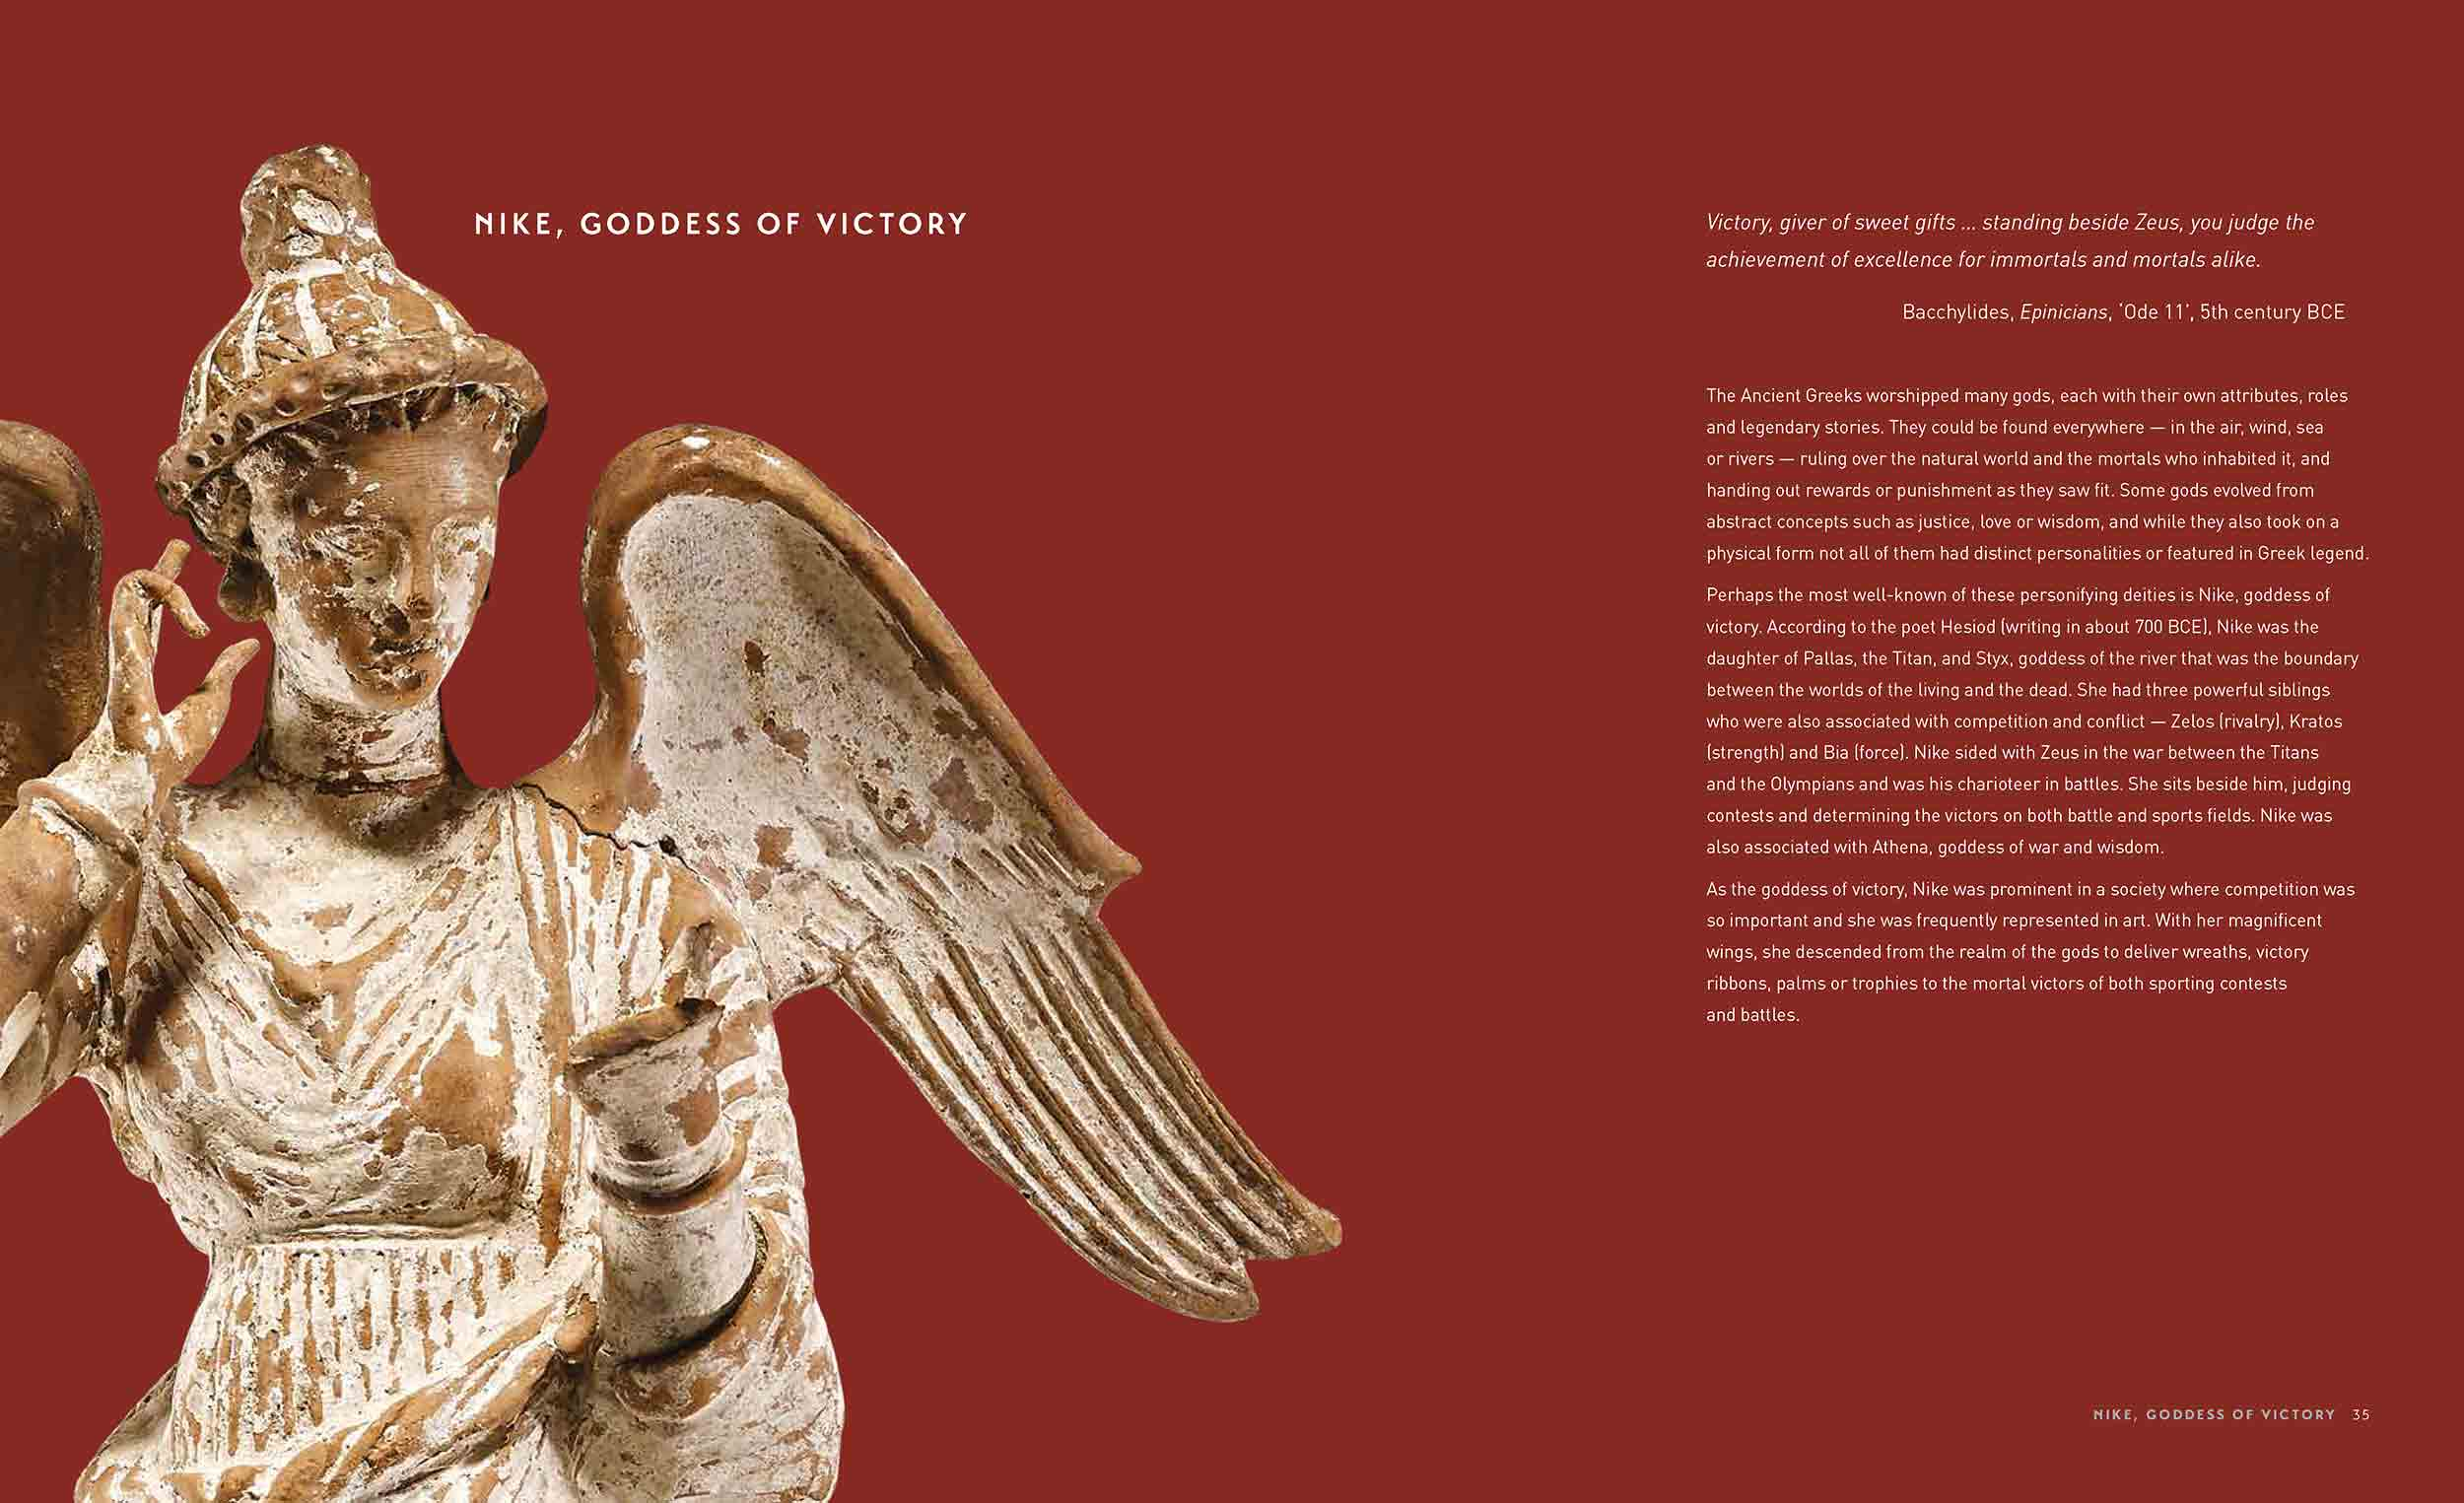 Sample page of a catalogue featuring a marble statue and text. - click to view larger image